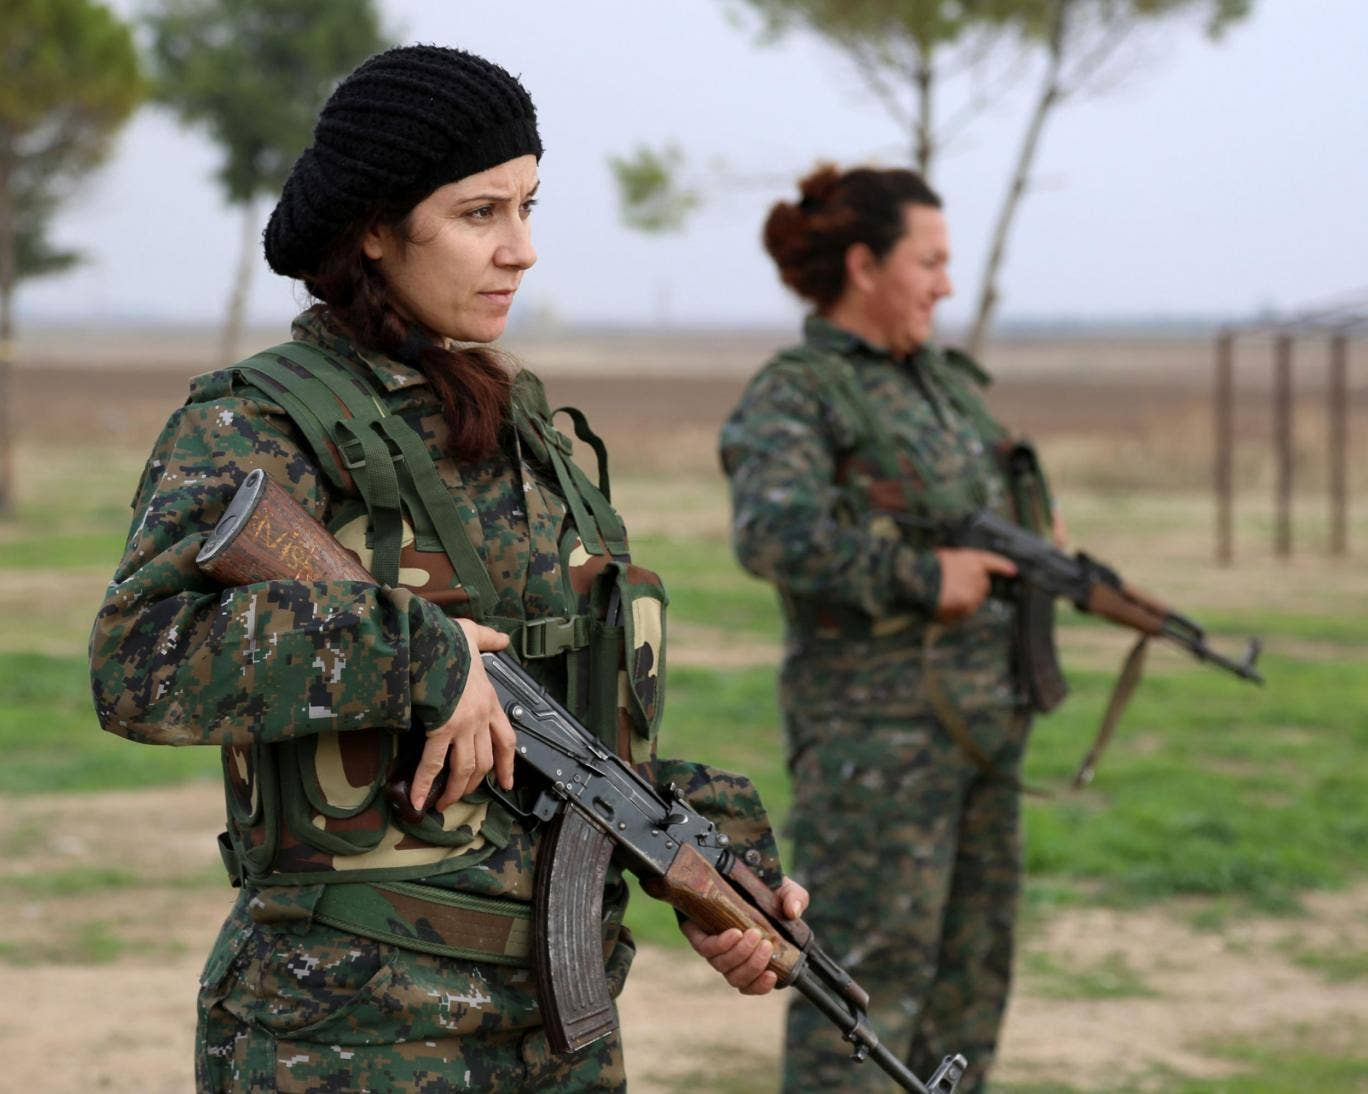 Syriac Christian women, members of the battalion called the 'Female Protection Forces of the Land Between the Two Rivers' fighting the Islamic State group